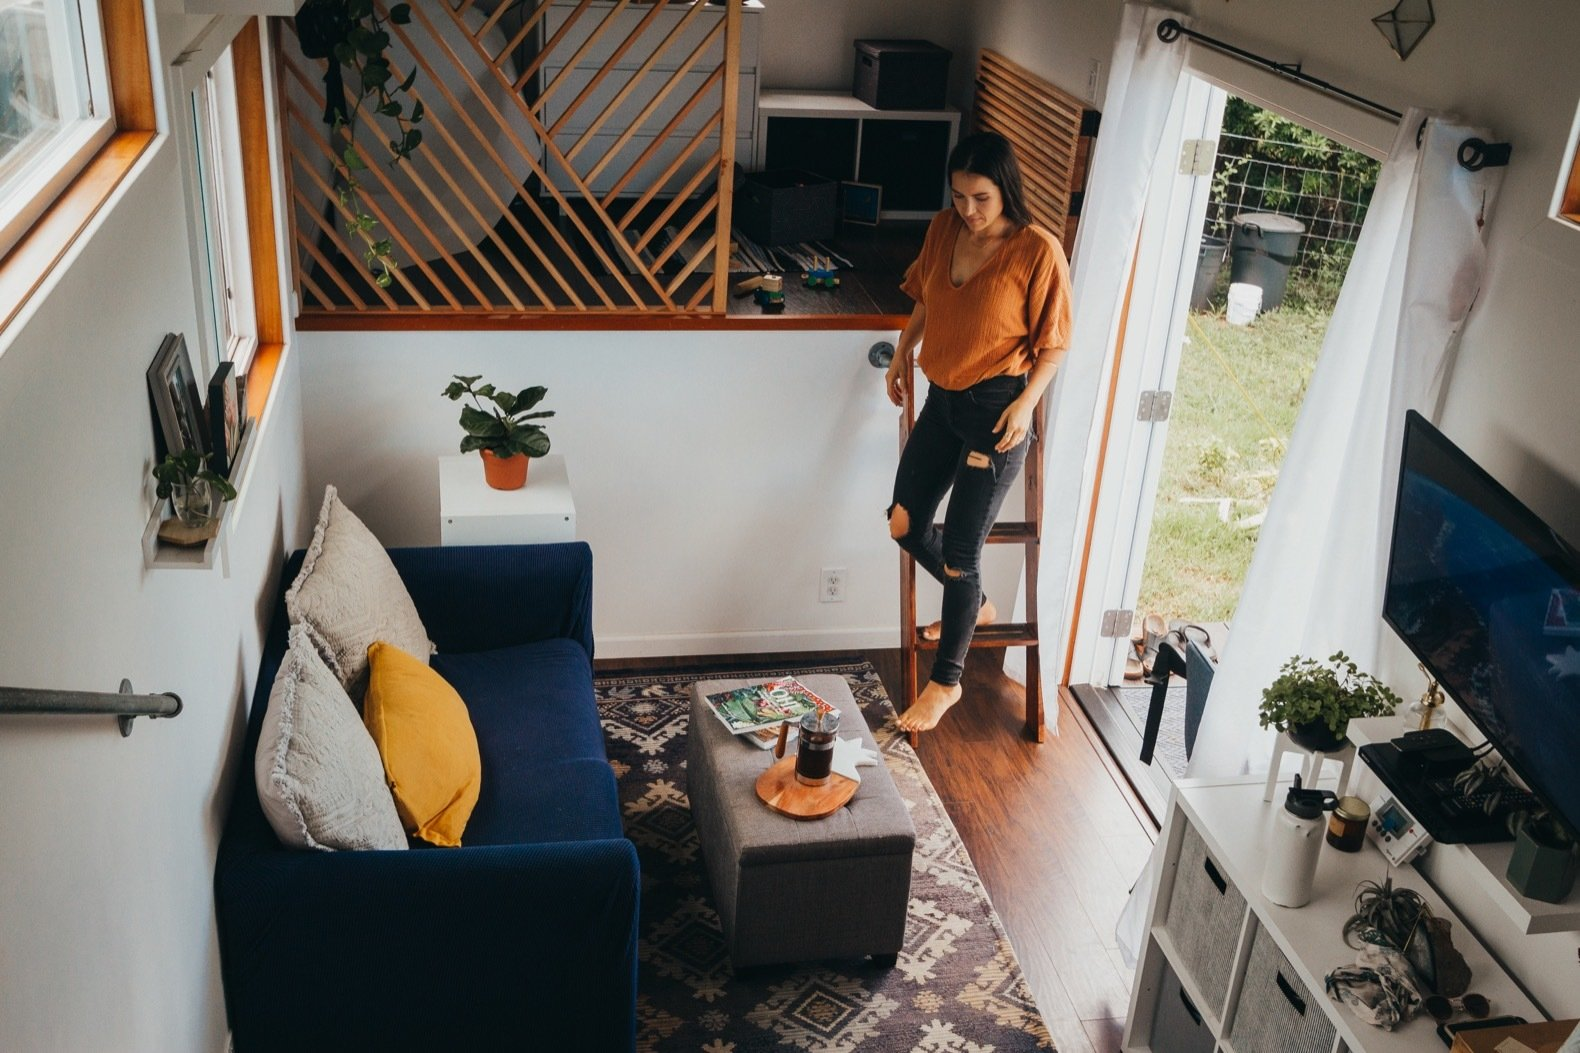 Living, Medium Hardwood, Coffee Tables, Sofa, Rug, Bench, Shelves, End Tables, and Wall Custom-built from the ground up, a 360-square-foot tiny house on wheels is an affordable, off-grid paradise for a family of three in Hawaii.  Living Bench Medium Hardwood Wall Photos from Budget Breakdown: A Maui Couple Build an Off-Grid Tiny Home For $45K